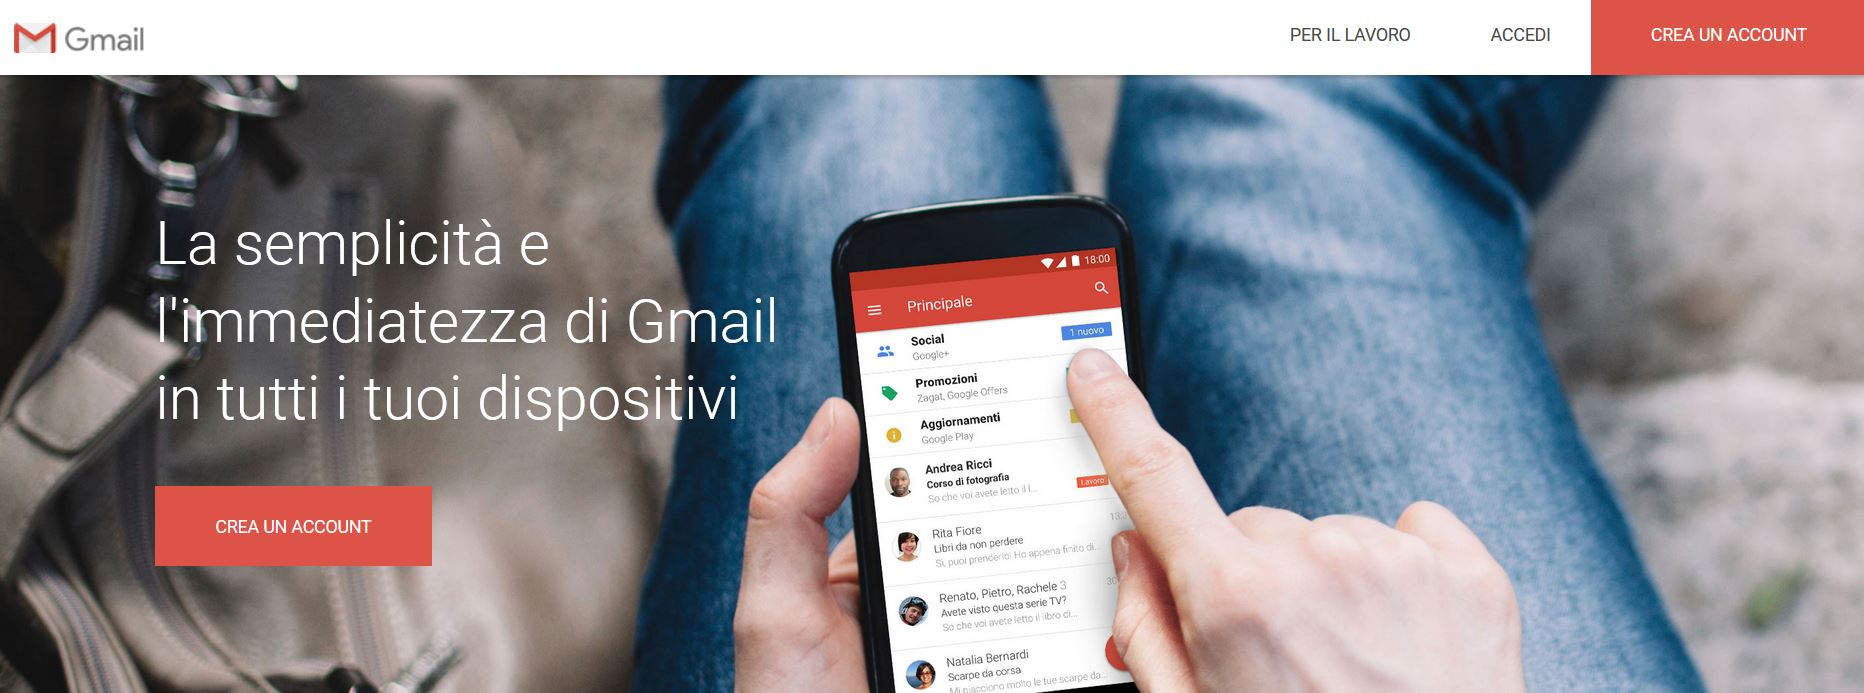 images-accedi-gmail